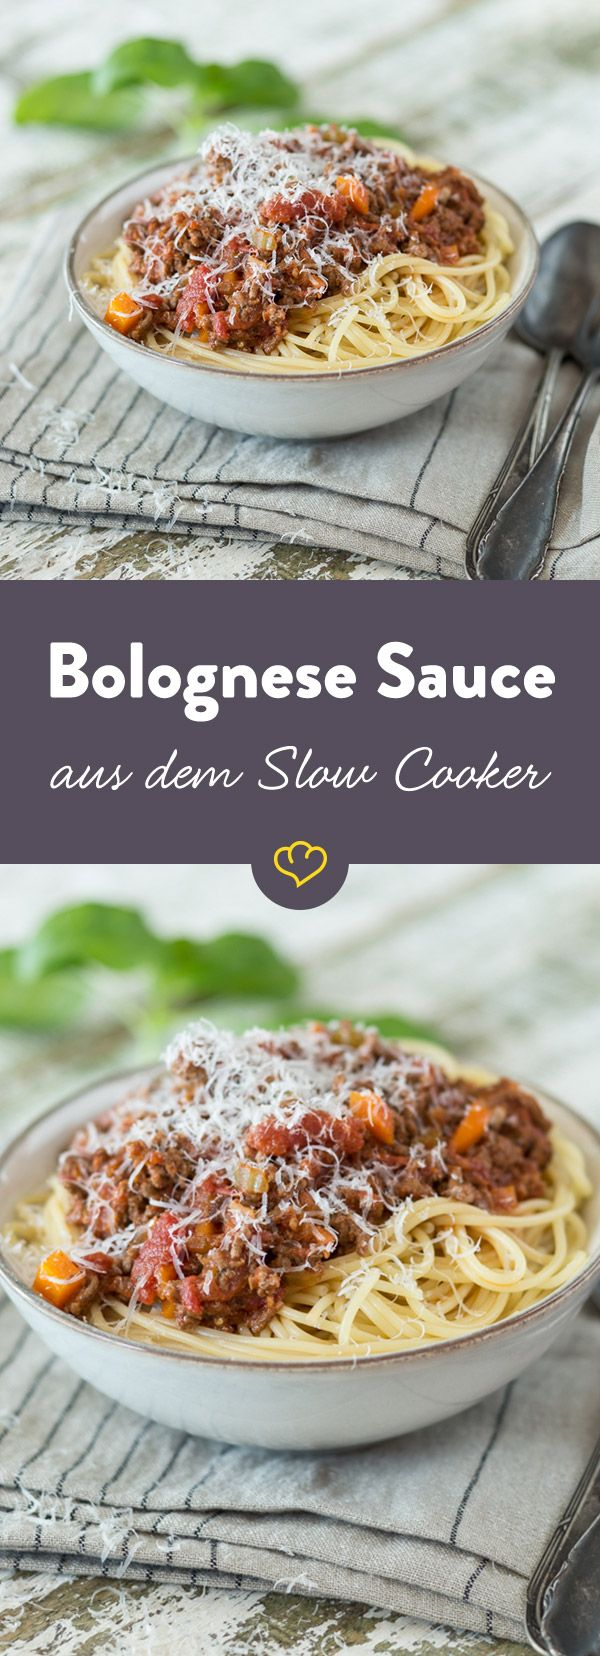 Photo of Bolognese sauce from the slow cooker